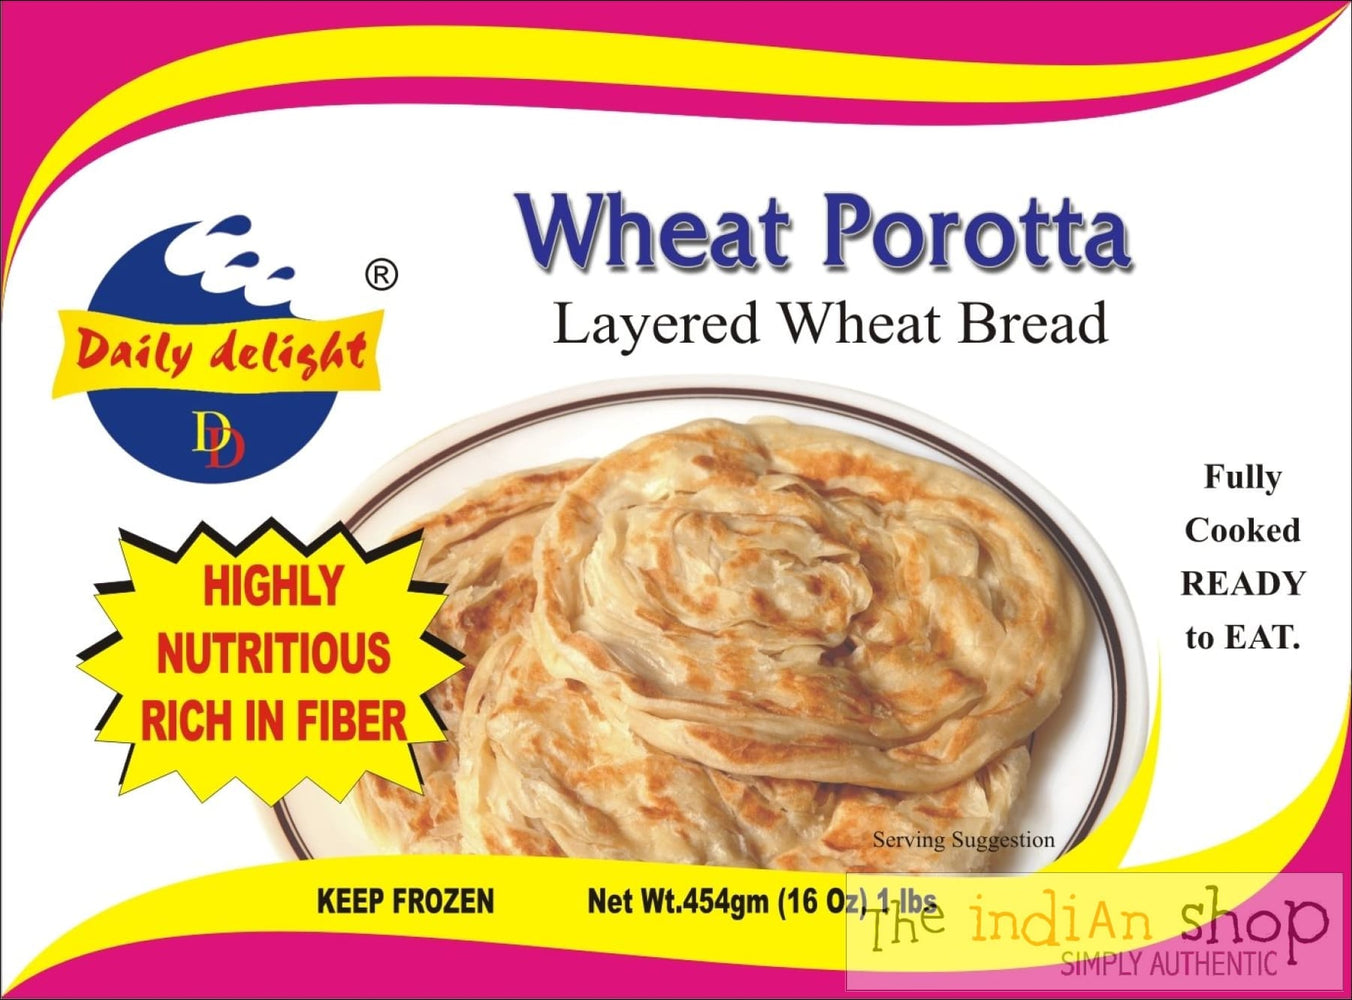 Daily Delight Wheat Porotta - 400 g - Frozen Indian Breads